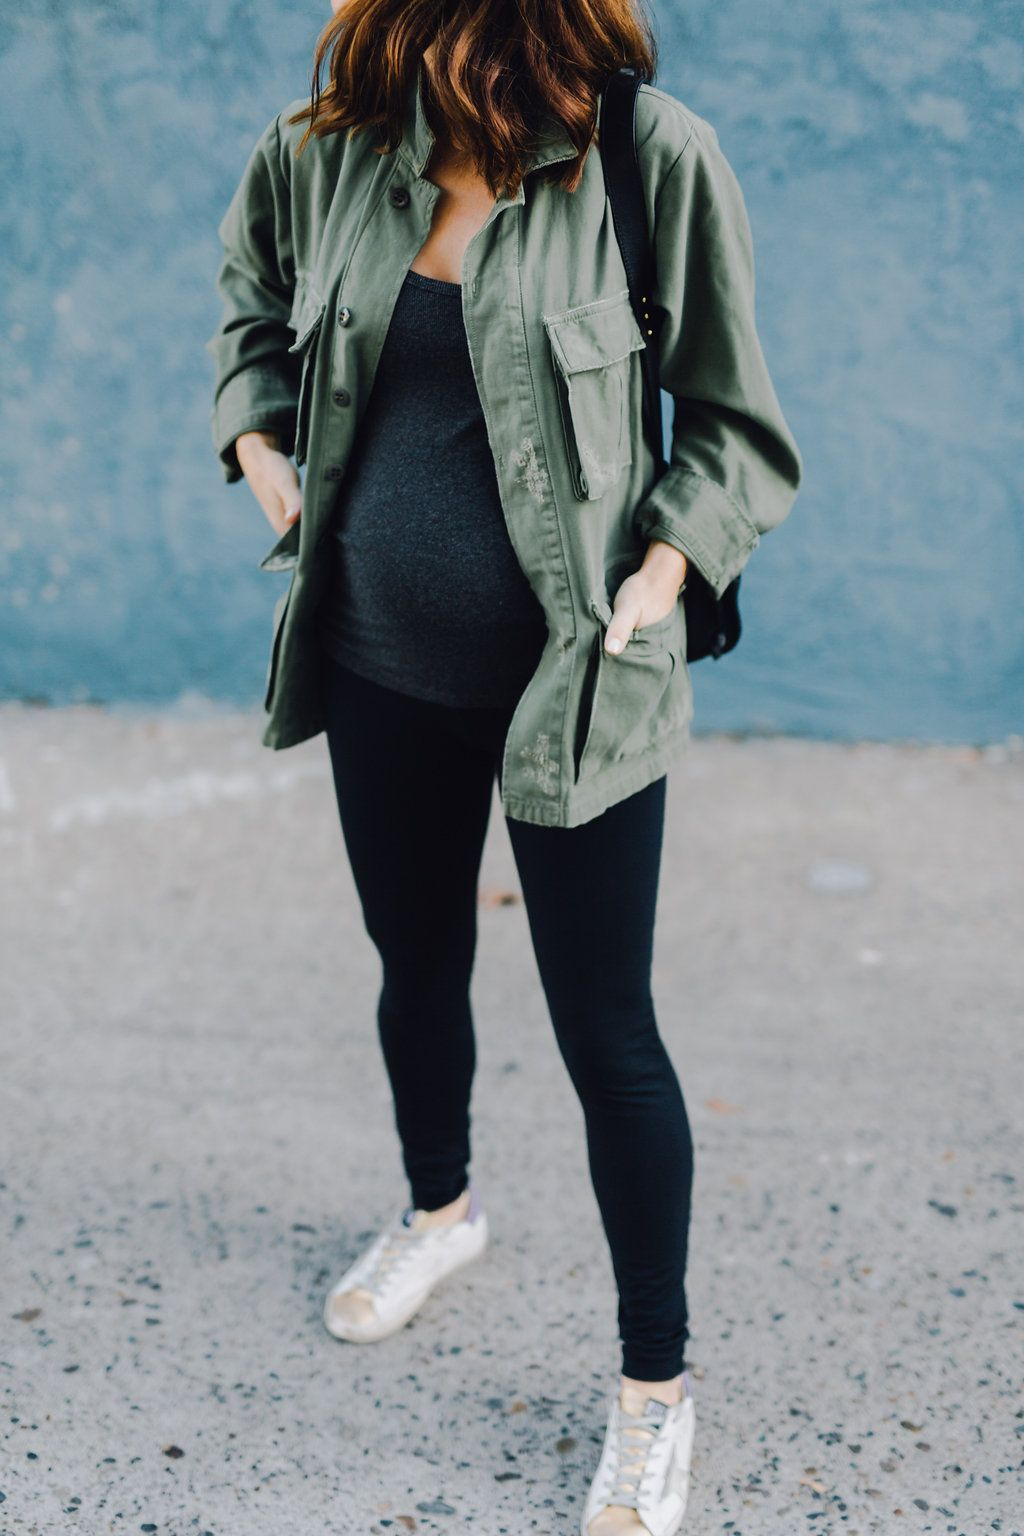 Fashion Tips and Looks for Pregnant Women